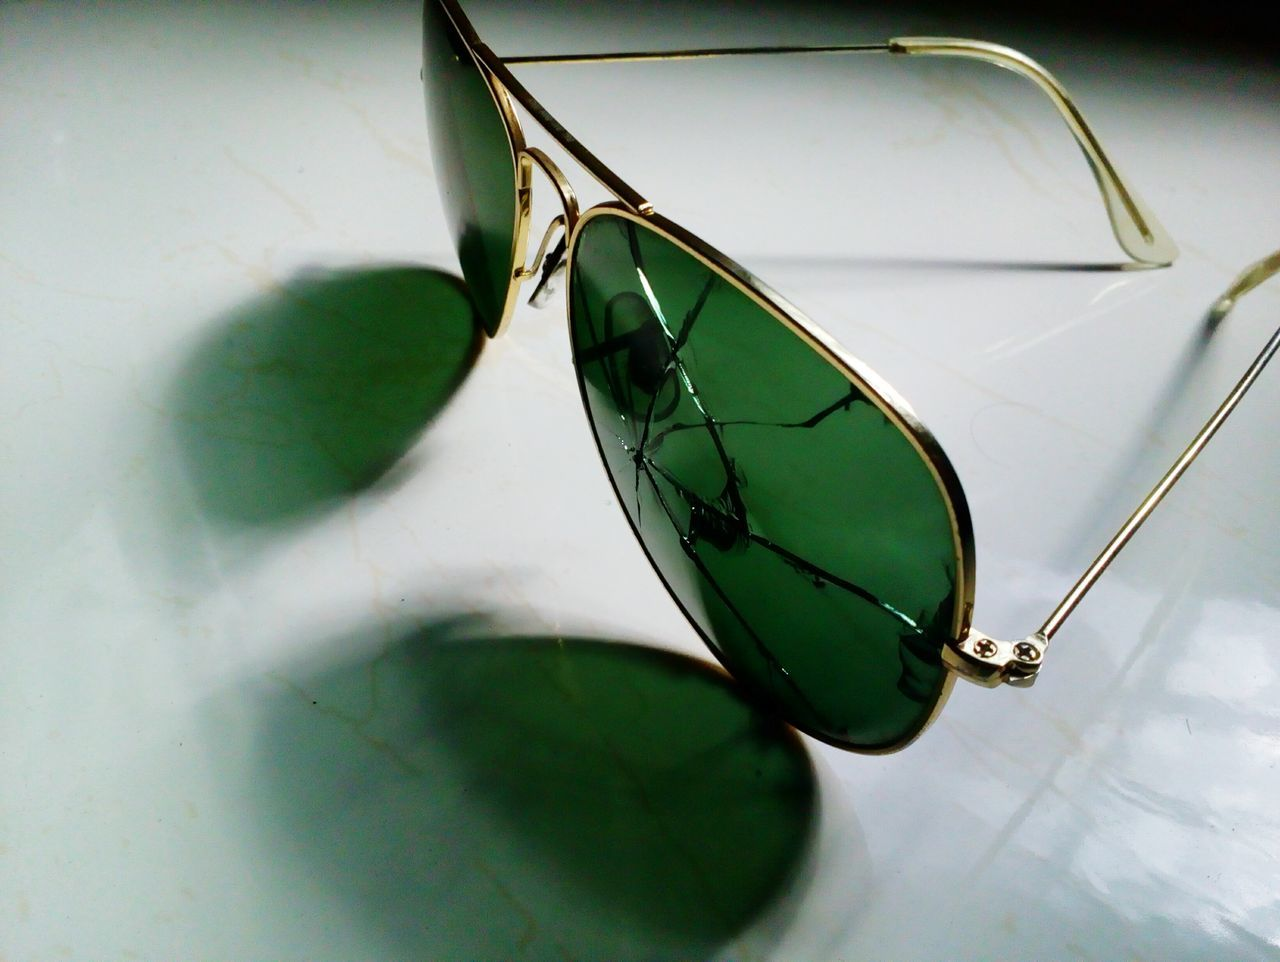 Ray-Ban cracked....emm Glasses Close-up Shadow Green Color Vision Eyesight No People Man Made Object Glass Reflection Glasses :) Glass Objects  Check This Out Broken Glass Broken Rayban RayBans® Rays Of Light Raybansunglasses RaybanAviator Rayban Style Raybanvision Rayban Aviators